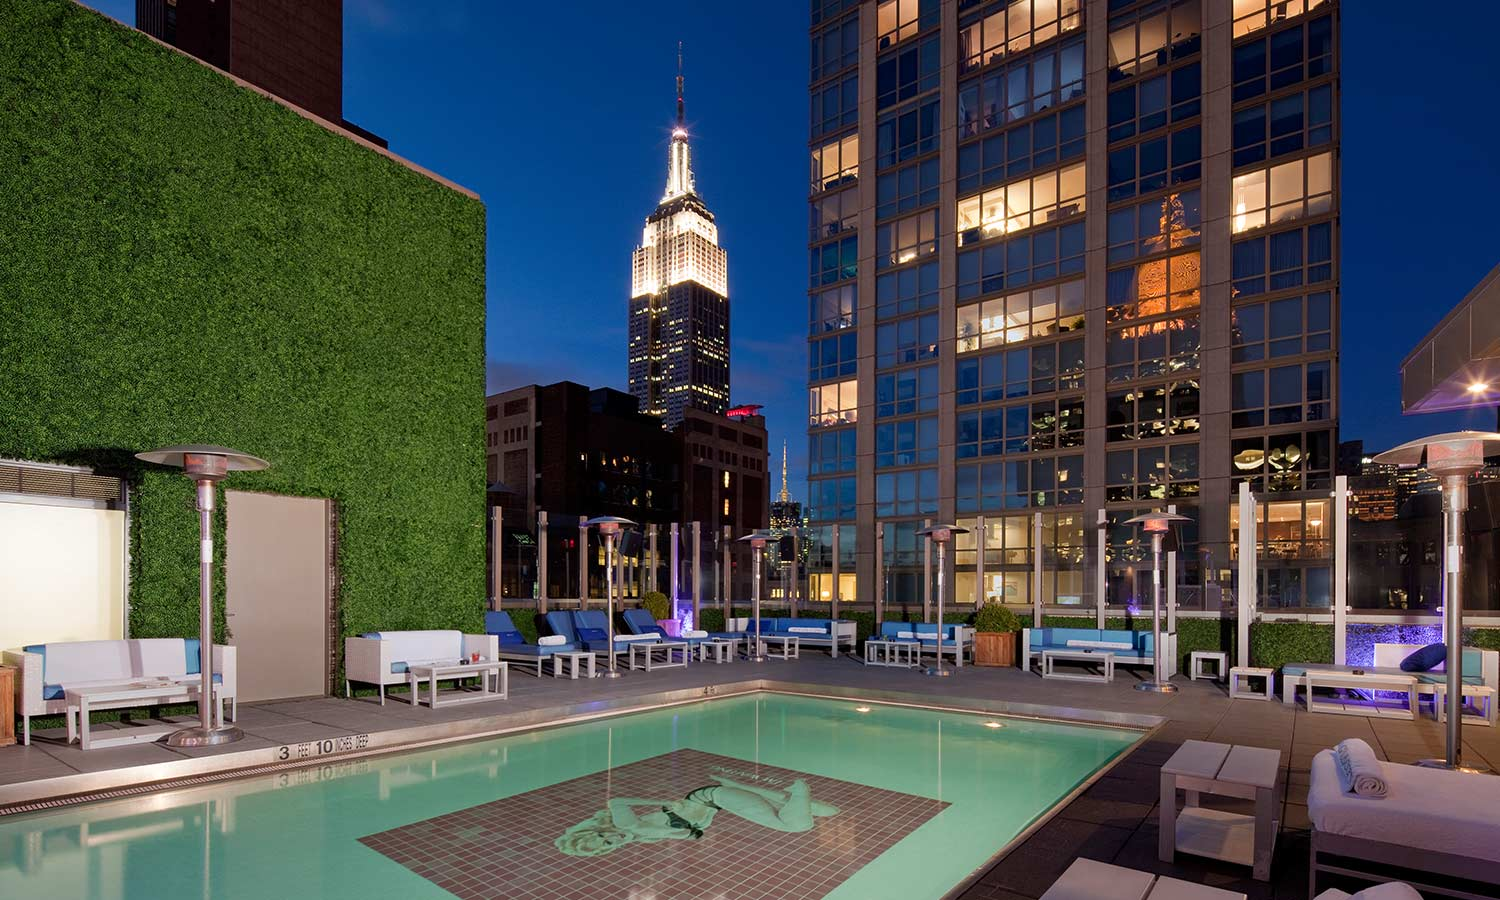 Restaurant Toit Terrasse New York Le Top Des Bars Rooftops D Hôtels à New York Silencio